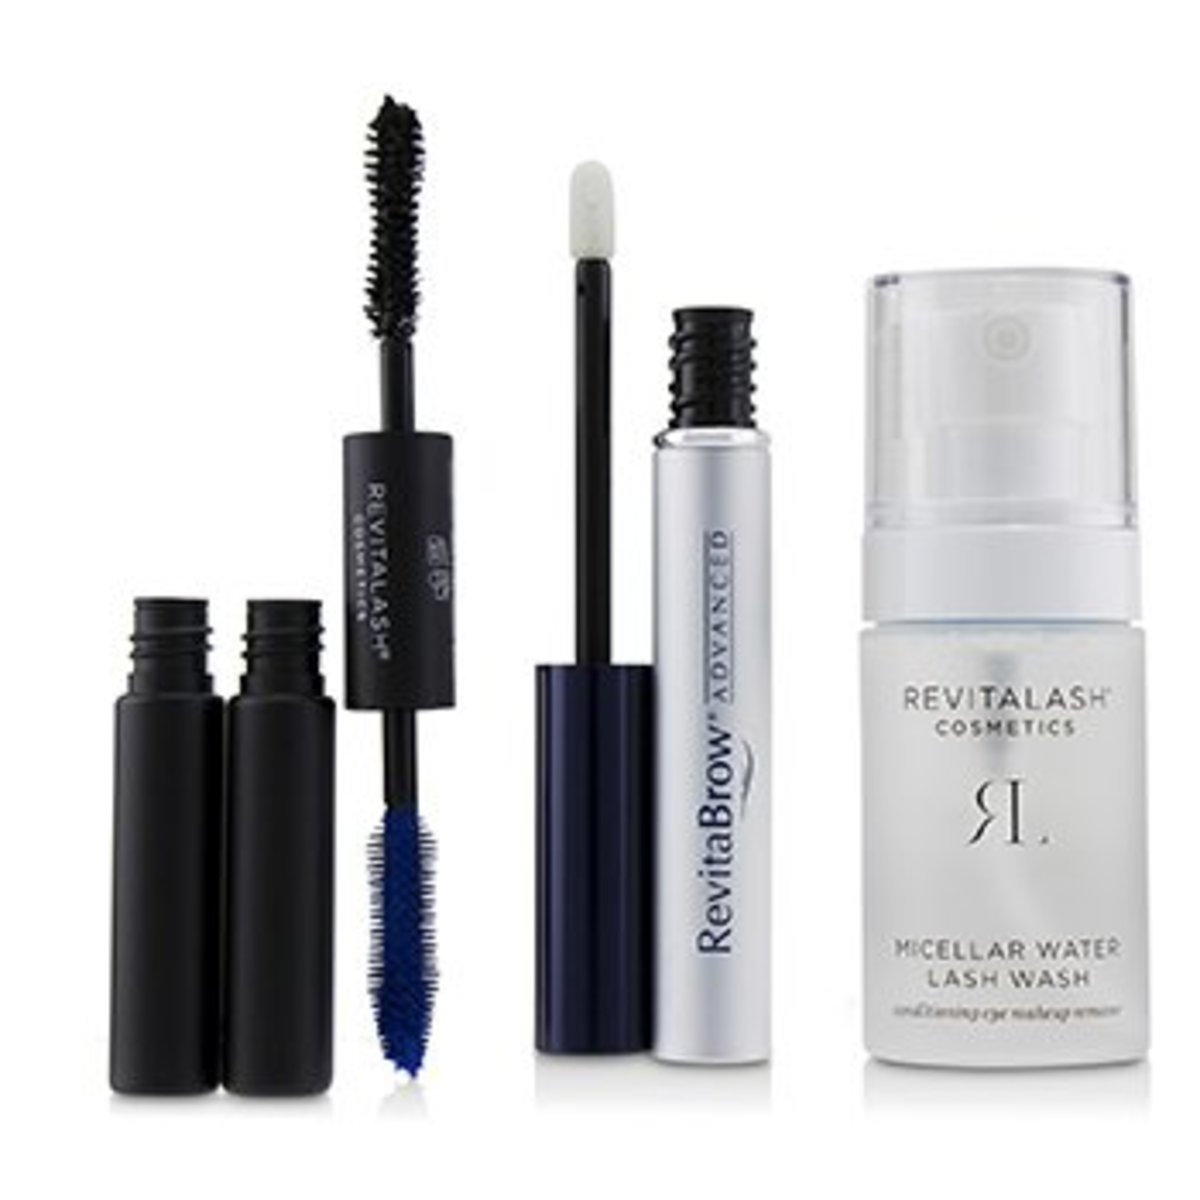 Eye Perfecting Gift Collection : (1x Eyebrow Conditioner, 1x Conditioning Eye Makeup Remover, 1x Vol